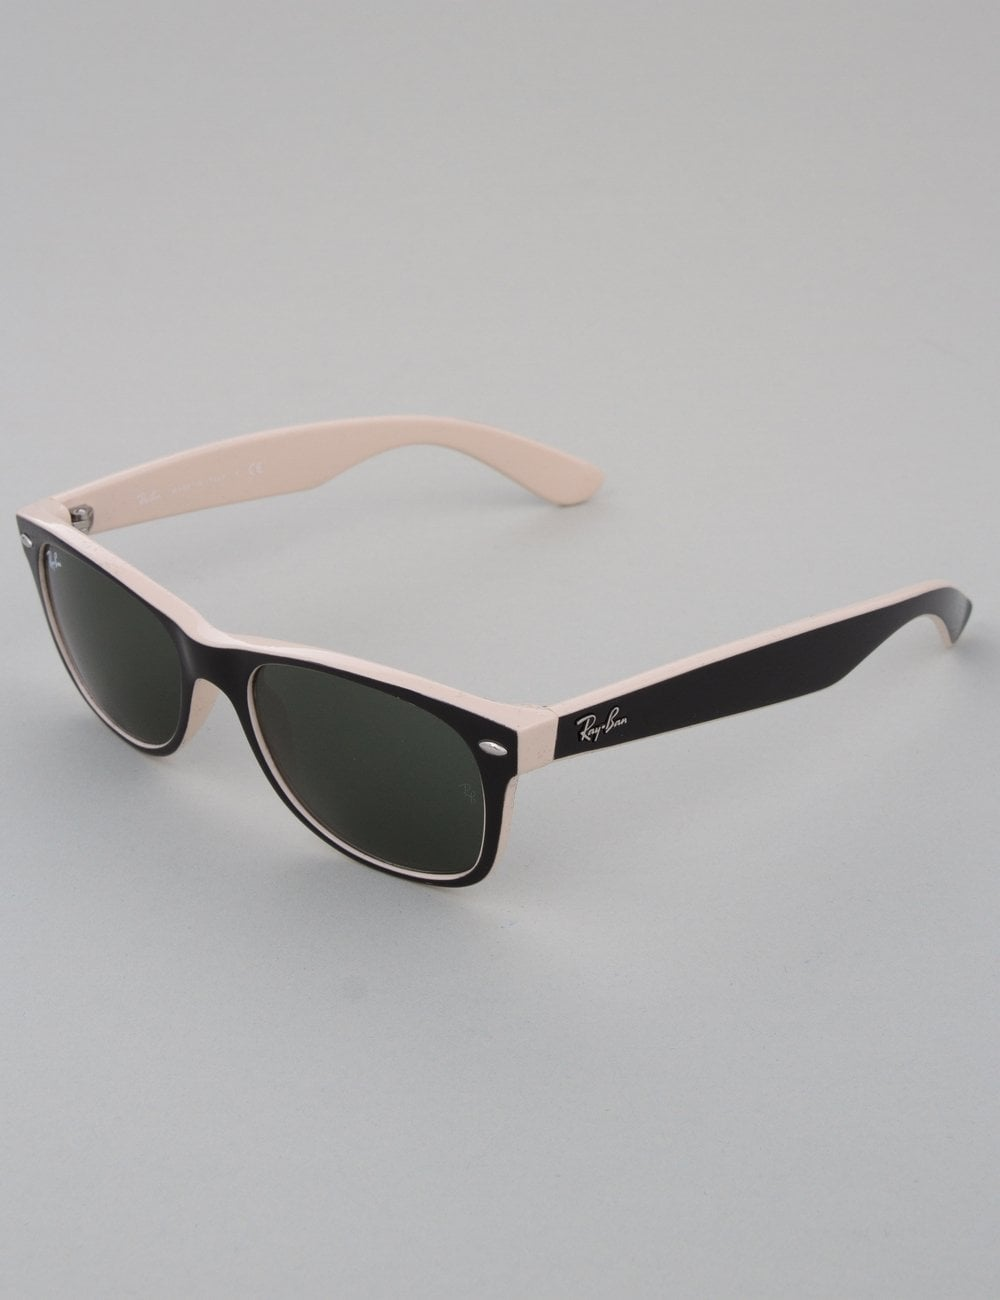 be2f95e2d Ray-Ban New Wayfarer Sunglasses - Top Black on Beige // Crystal Green